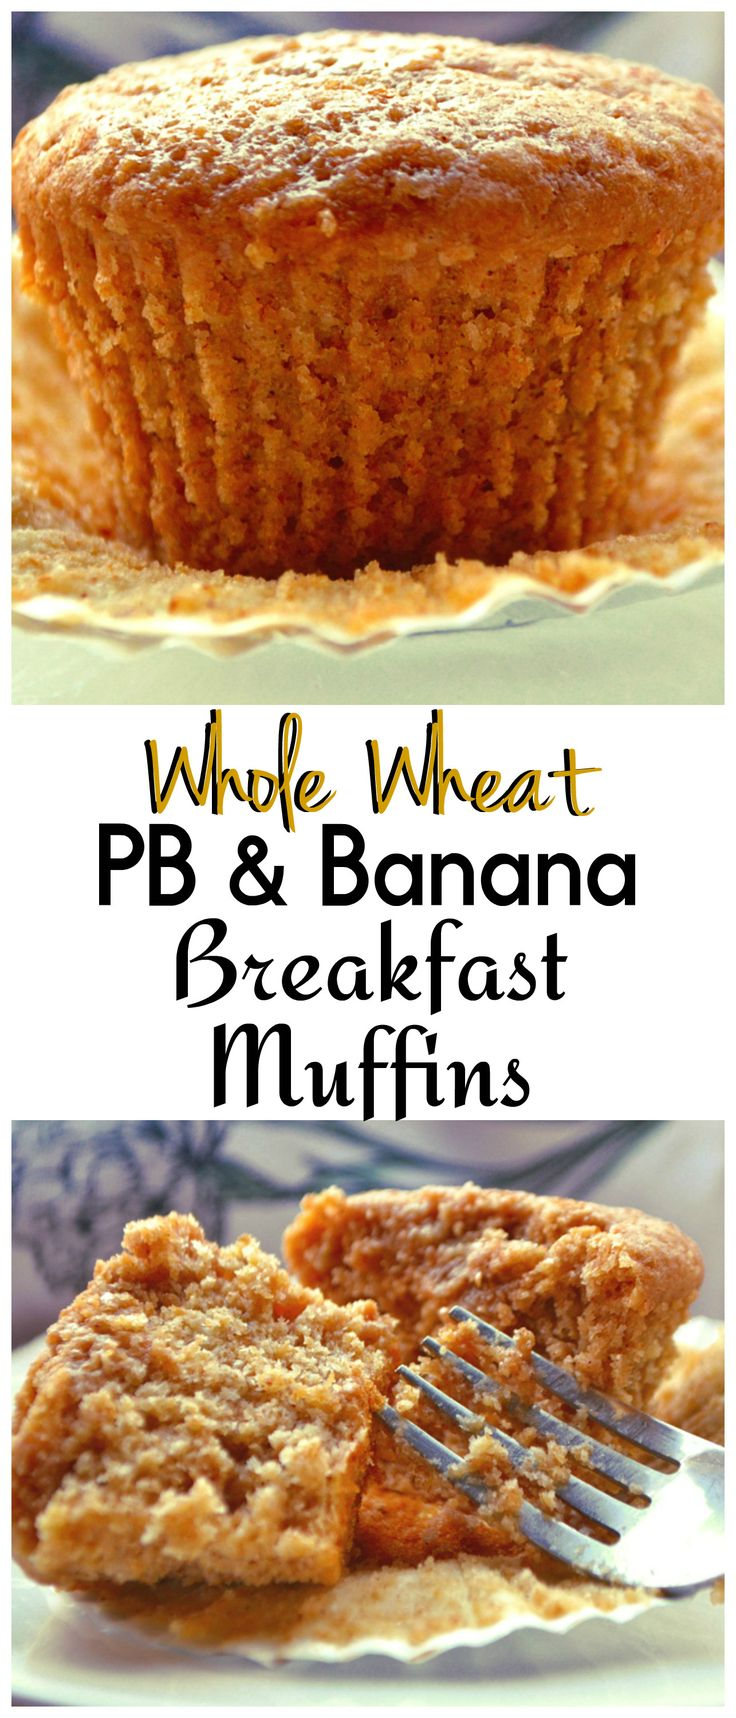 Healthy Breakfast & Snack Muffins | Made with whole wheat flour, bananas, peanut butter & honey | Filling, delicious & nutritious muffins | www.craftycookingmama.com